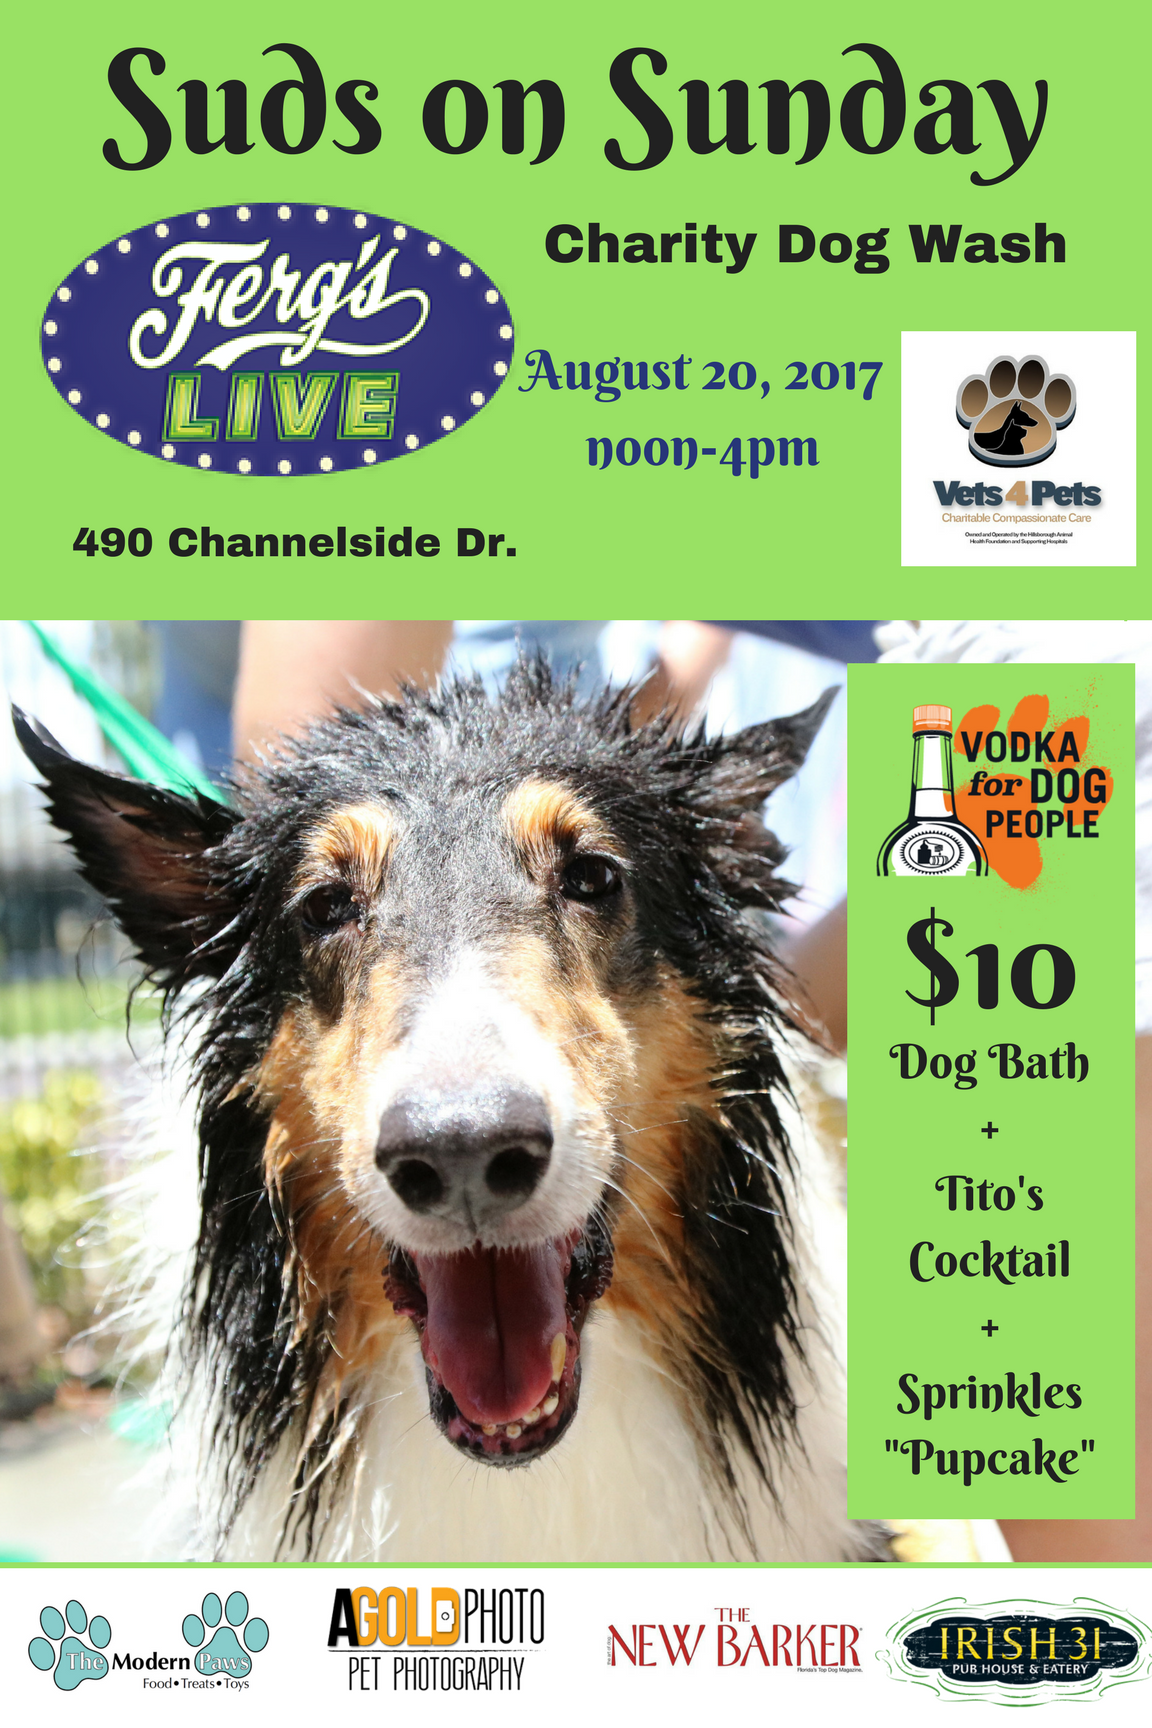 Suds on Sunday Charity Dog Wash